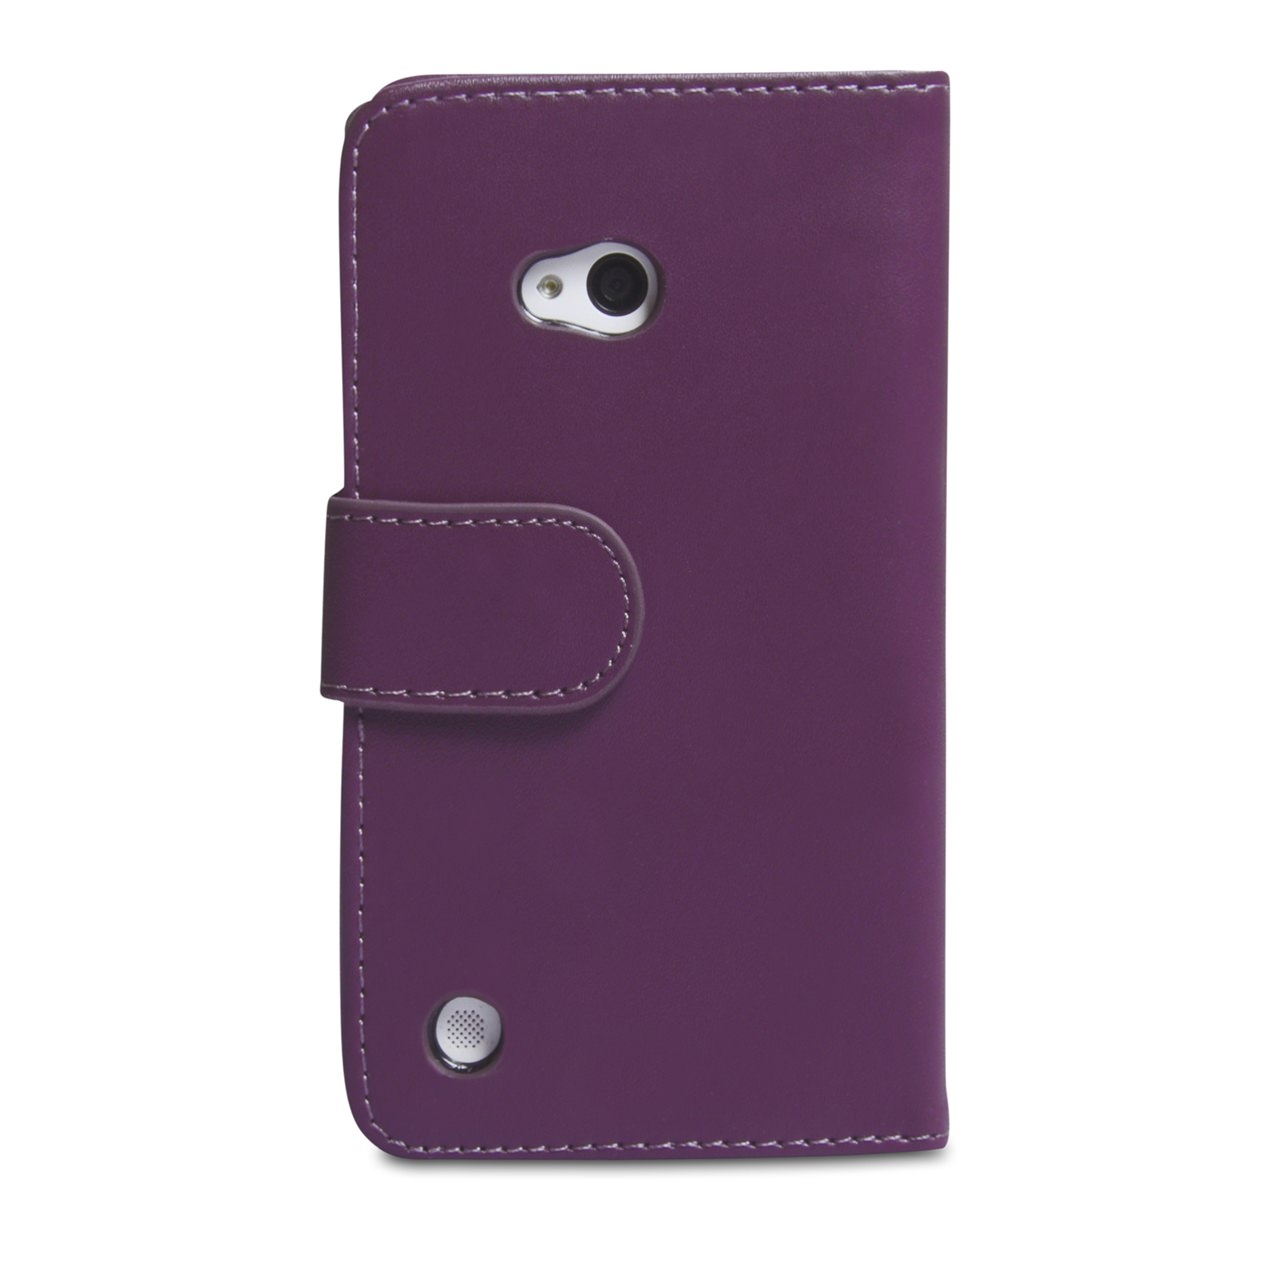 YouSave Nokia Lumia 720 Leather Effect Wallet Case - Purple